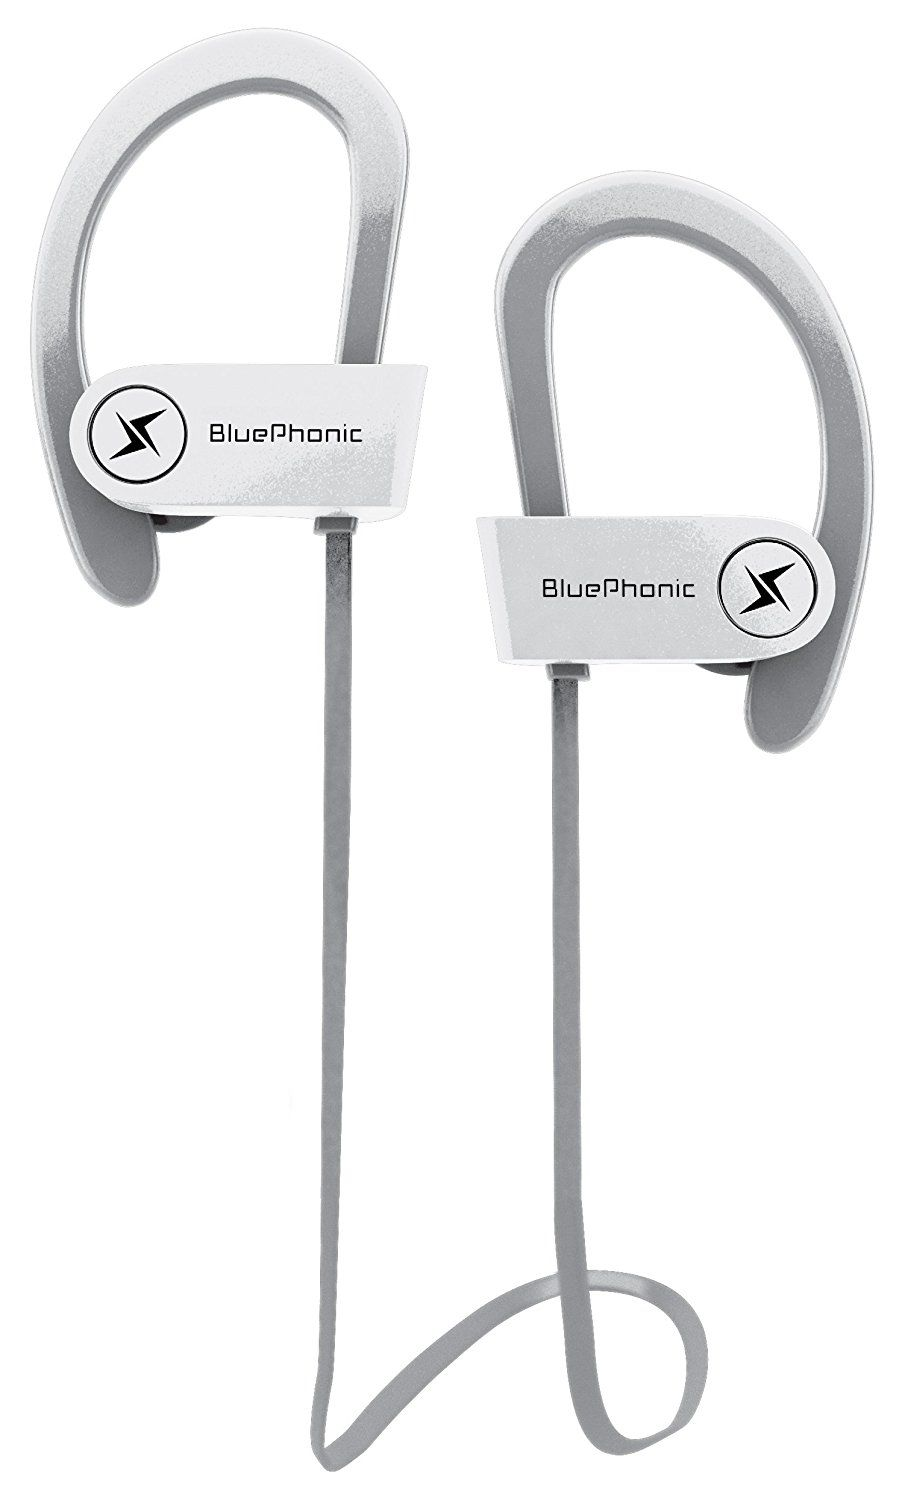 a97db1a6333 ... Sound Quality - Sweat Proof Stable Fit In Ear Workout Earbuds -  Ergonomic Running Earphones - Noise Cancelling Microphone w/Travel Case -  by Bluephonic